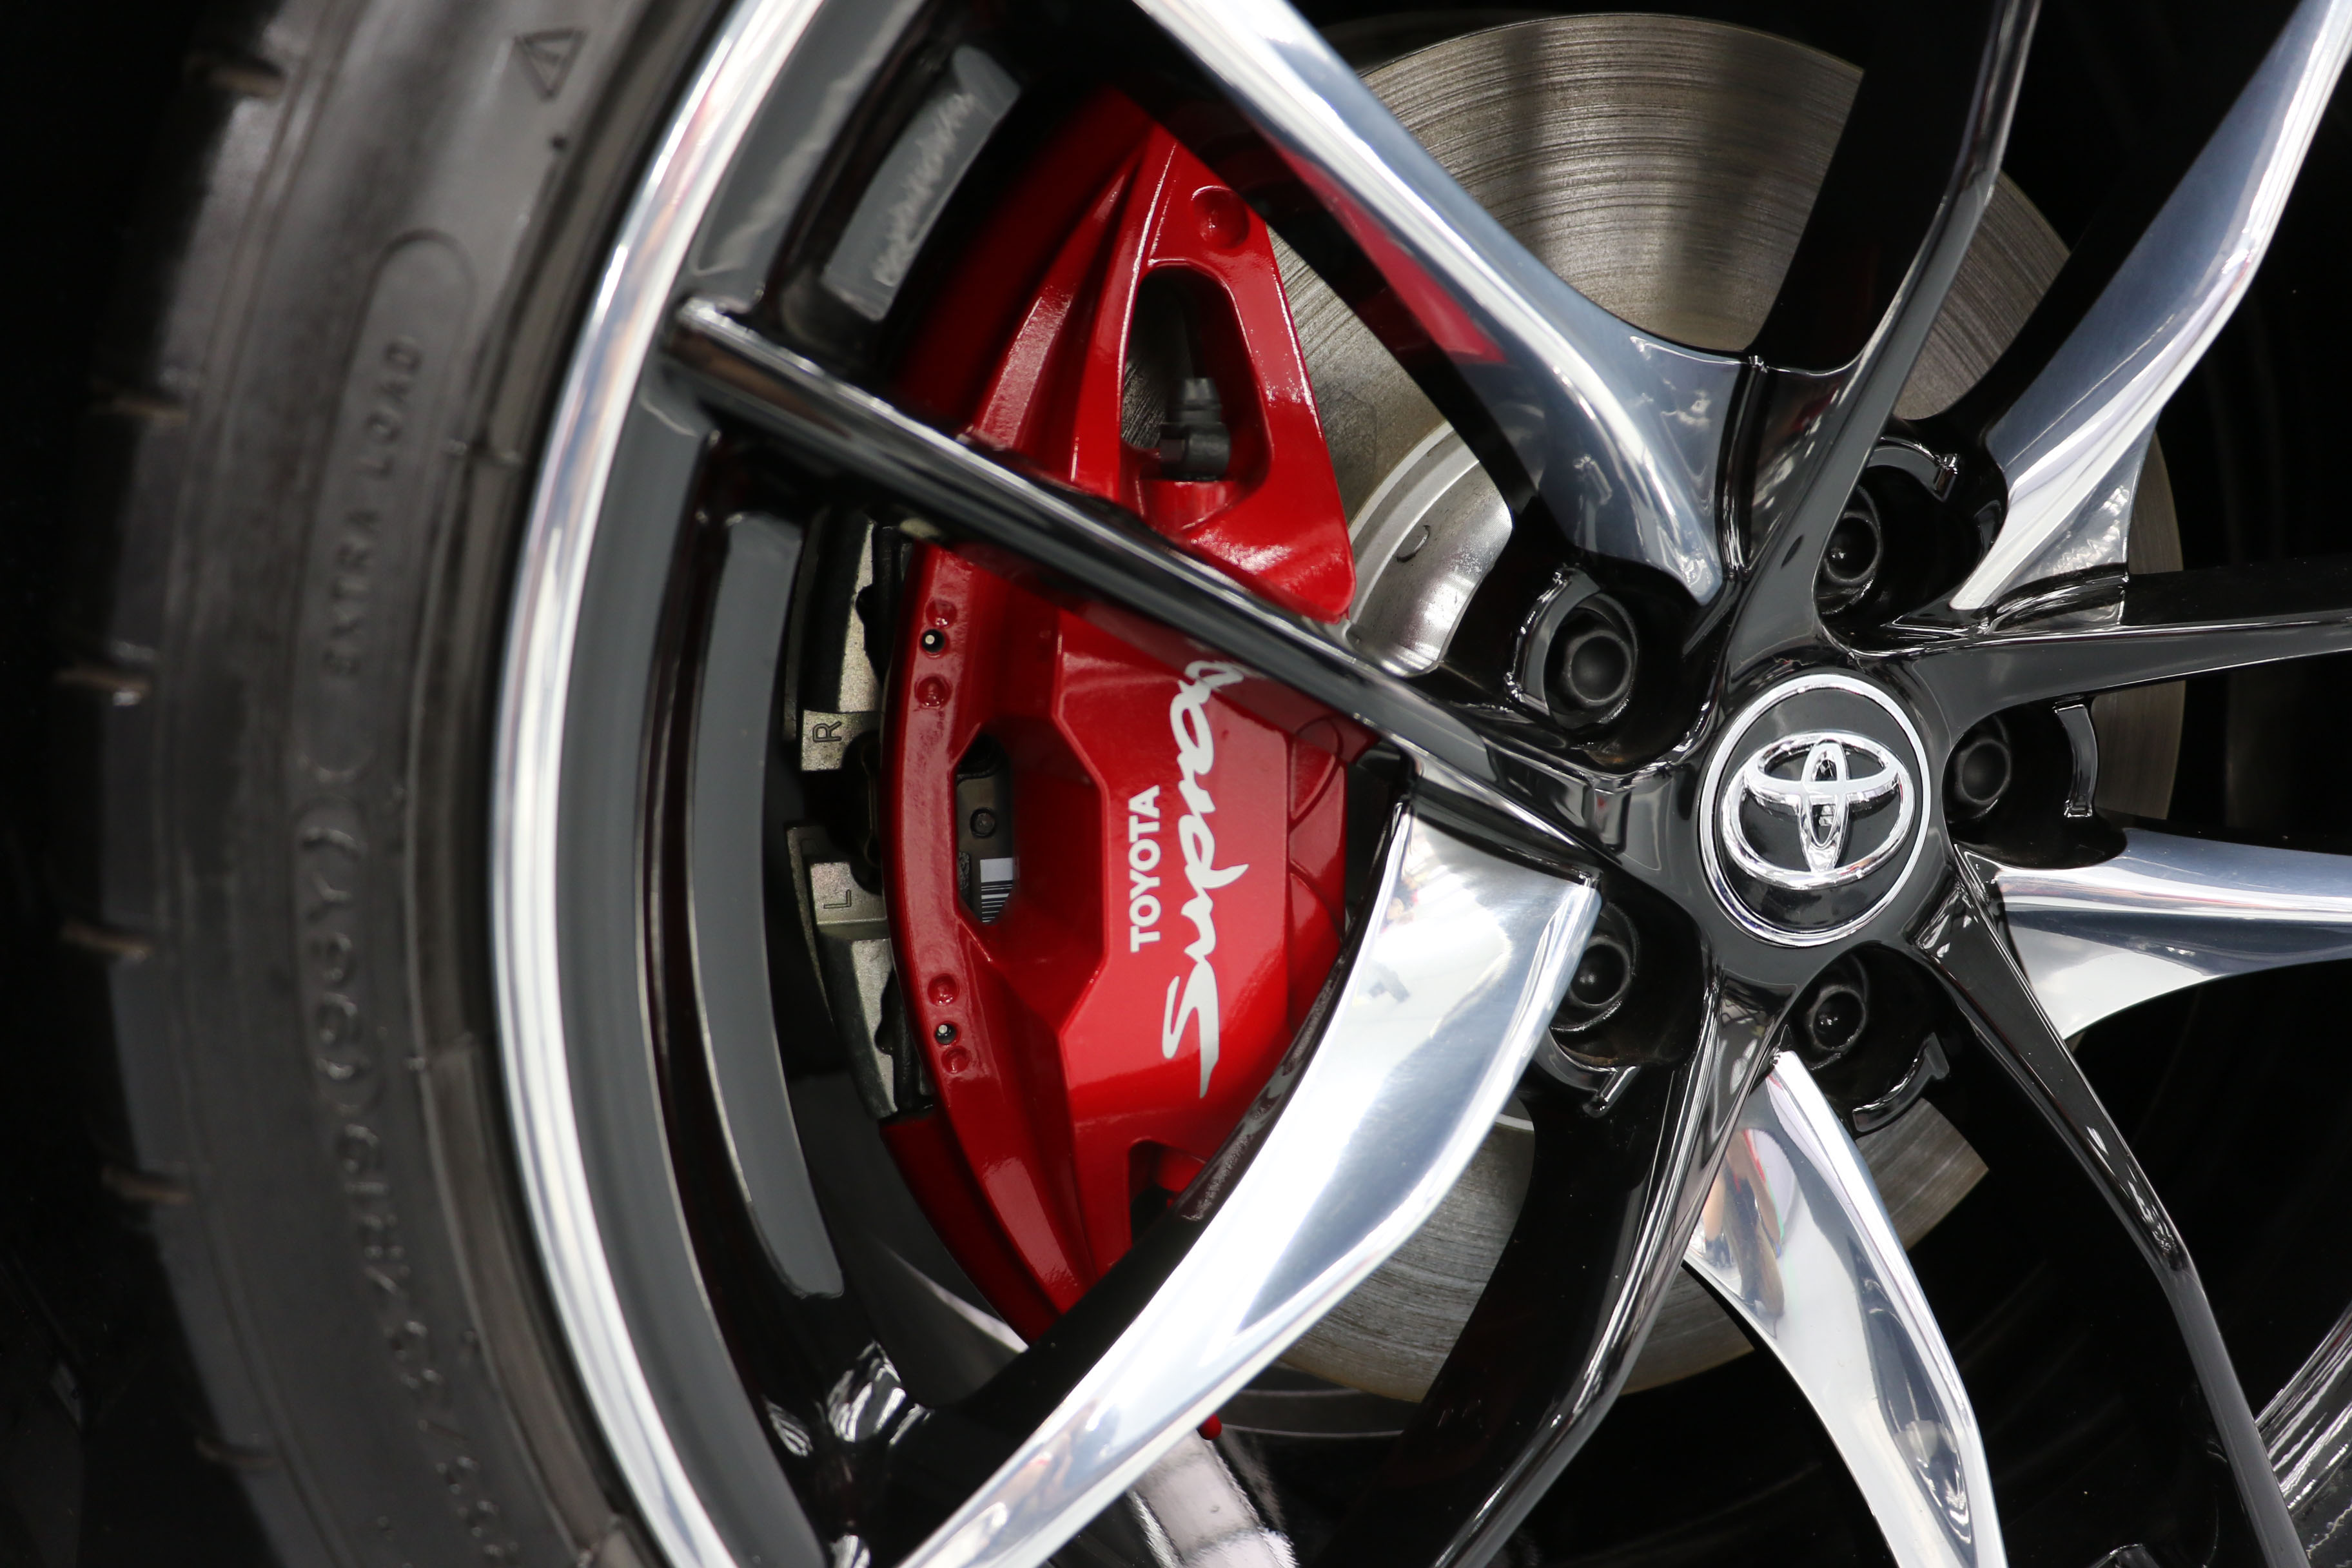 New red-painted brake calipers